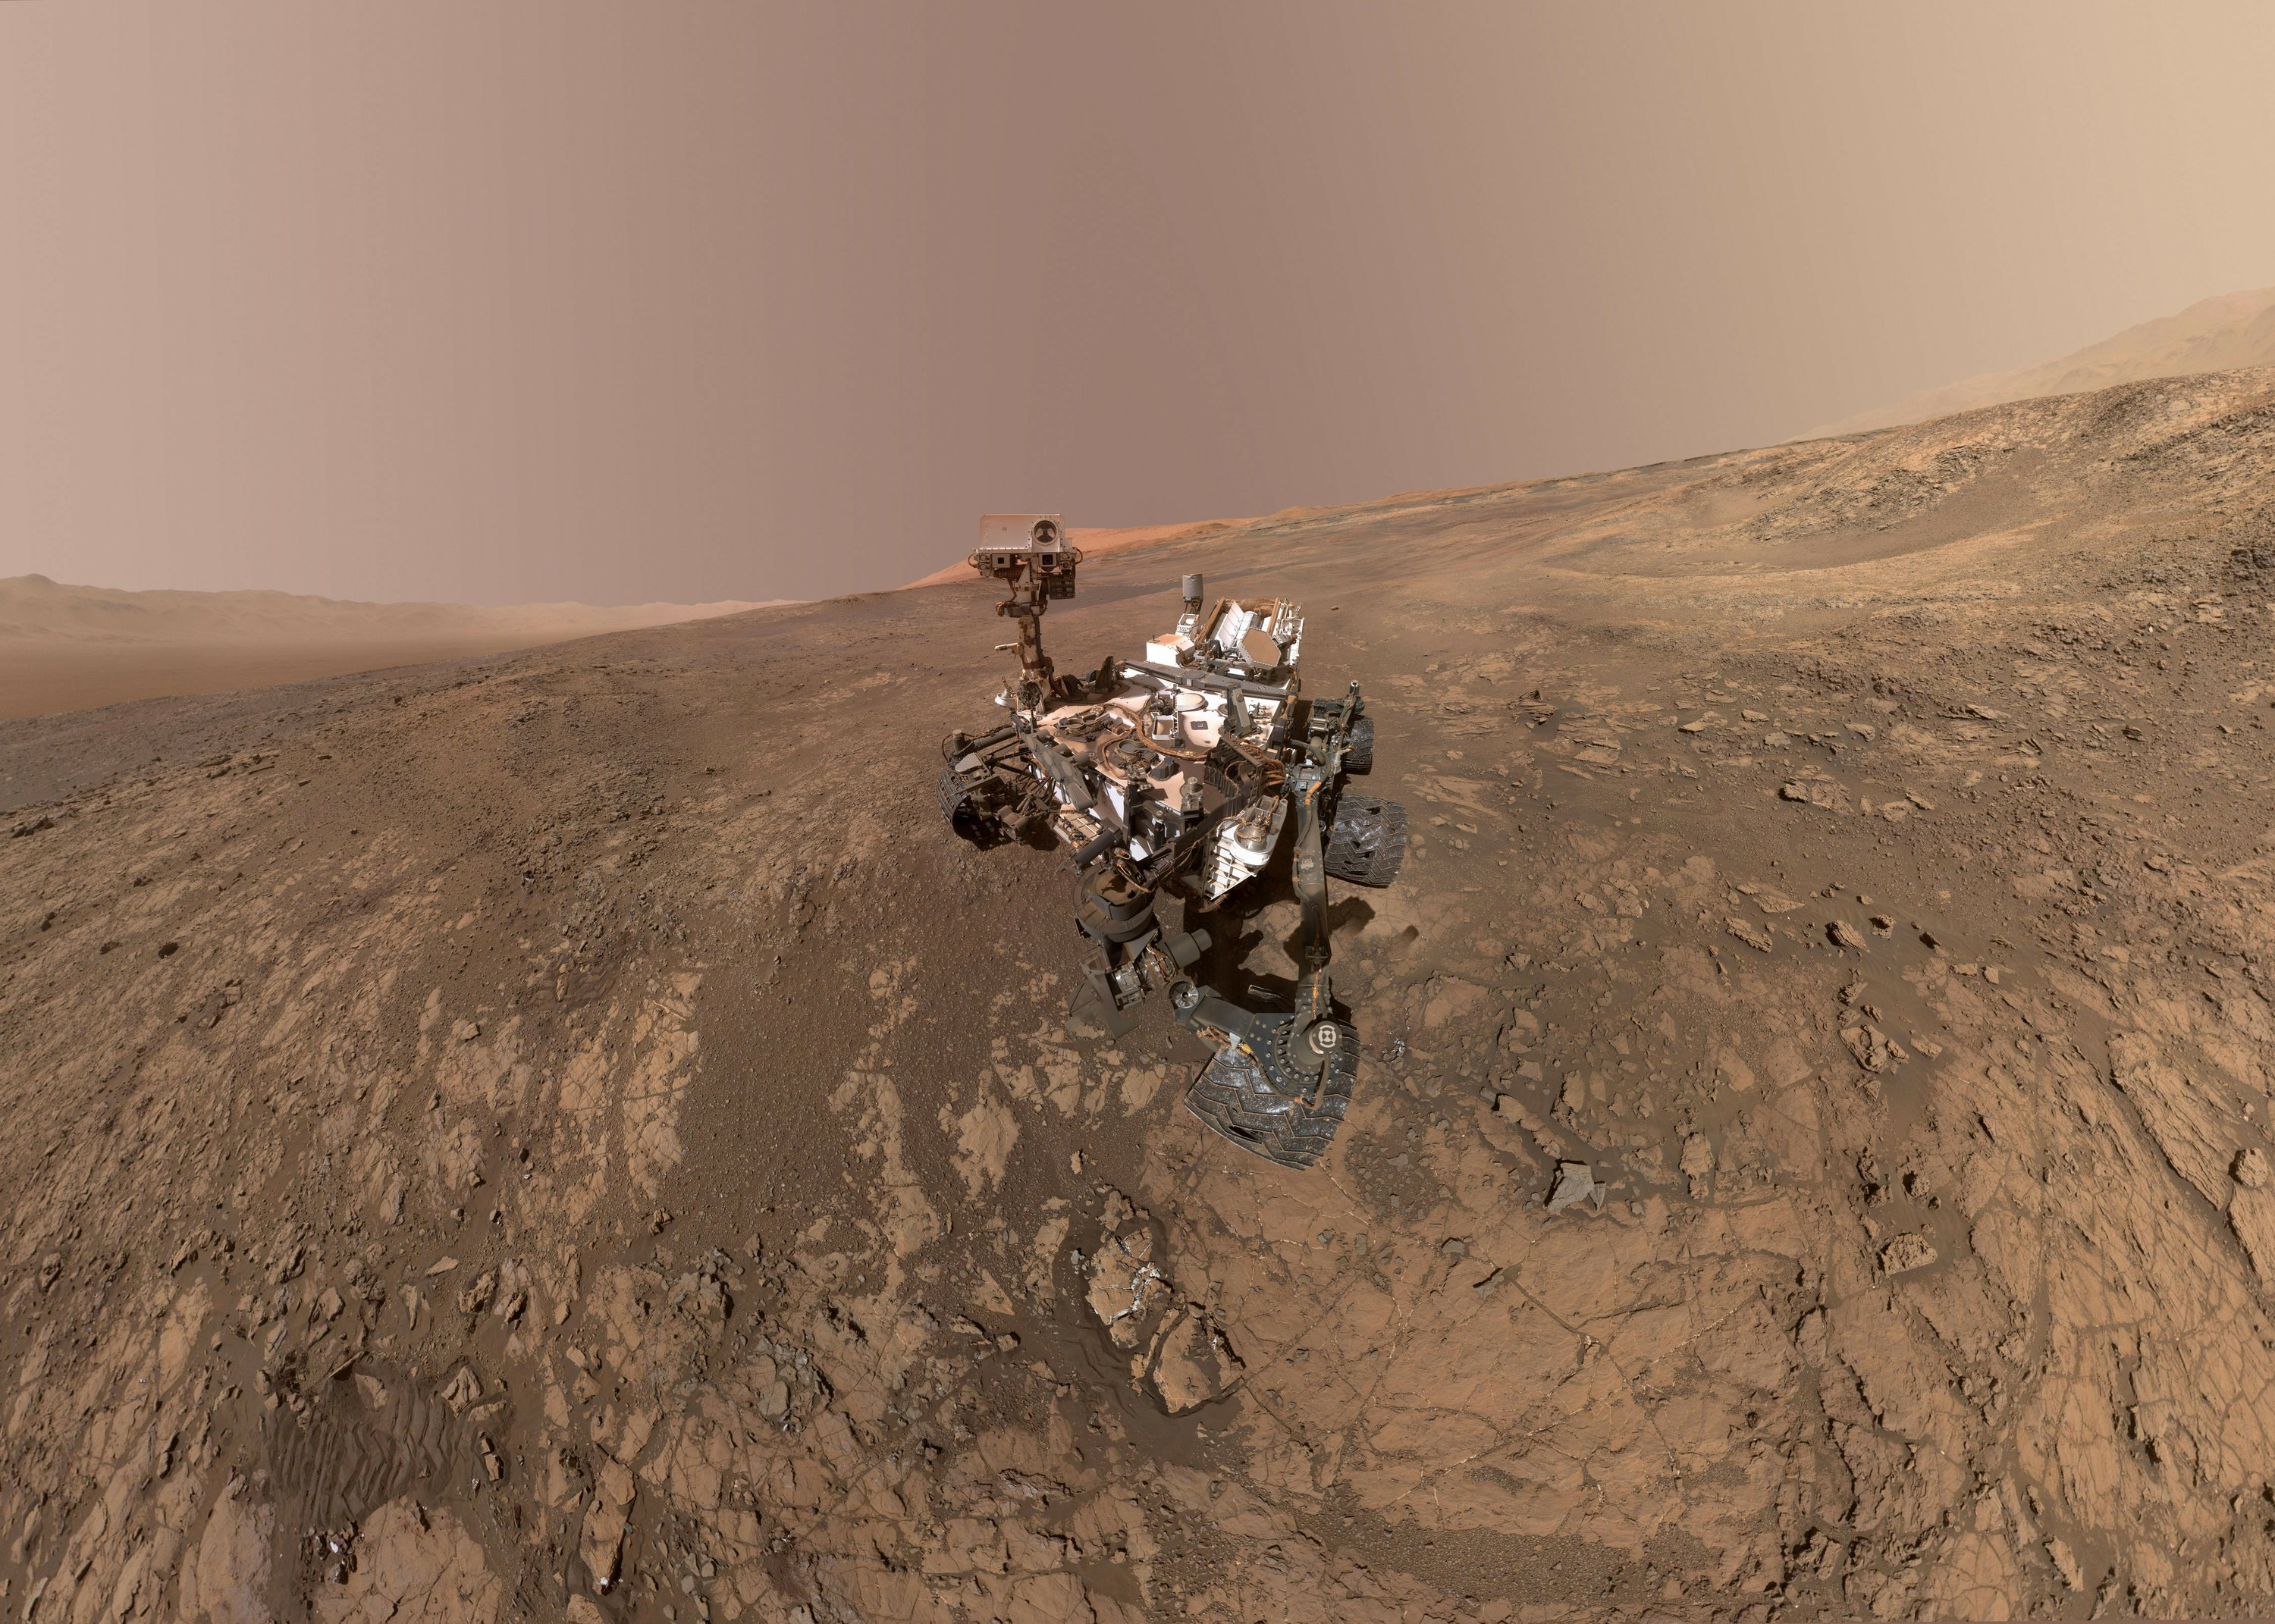 Curiosity is a carsized rover designed to explore the crater Gale on Mars as part of NASAs Mars Science Laboratory mission MSL Curiosity was launched from Cape